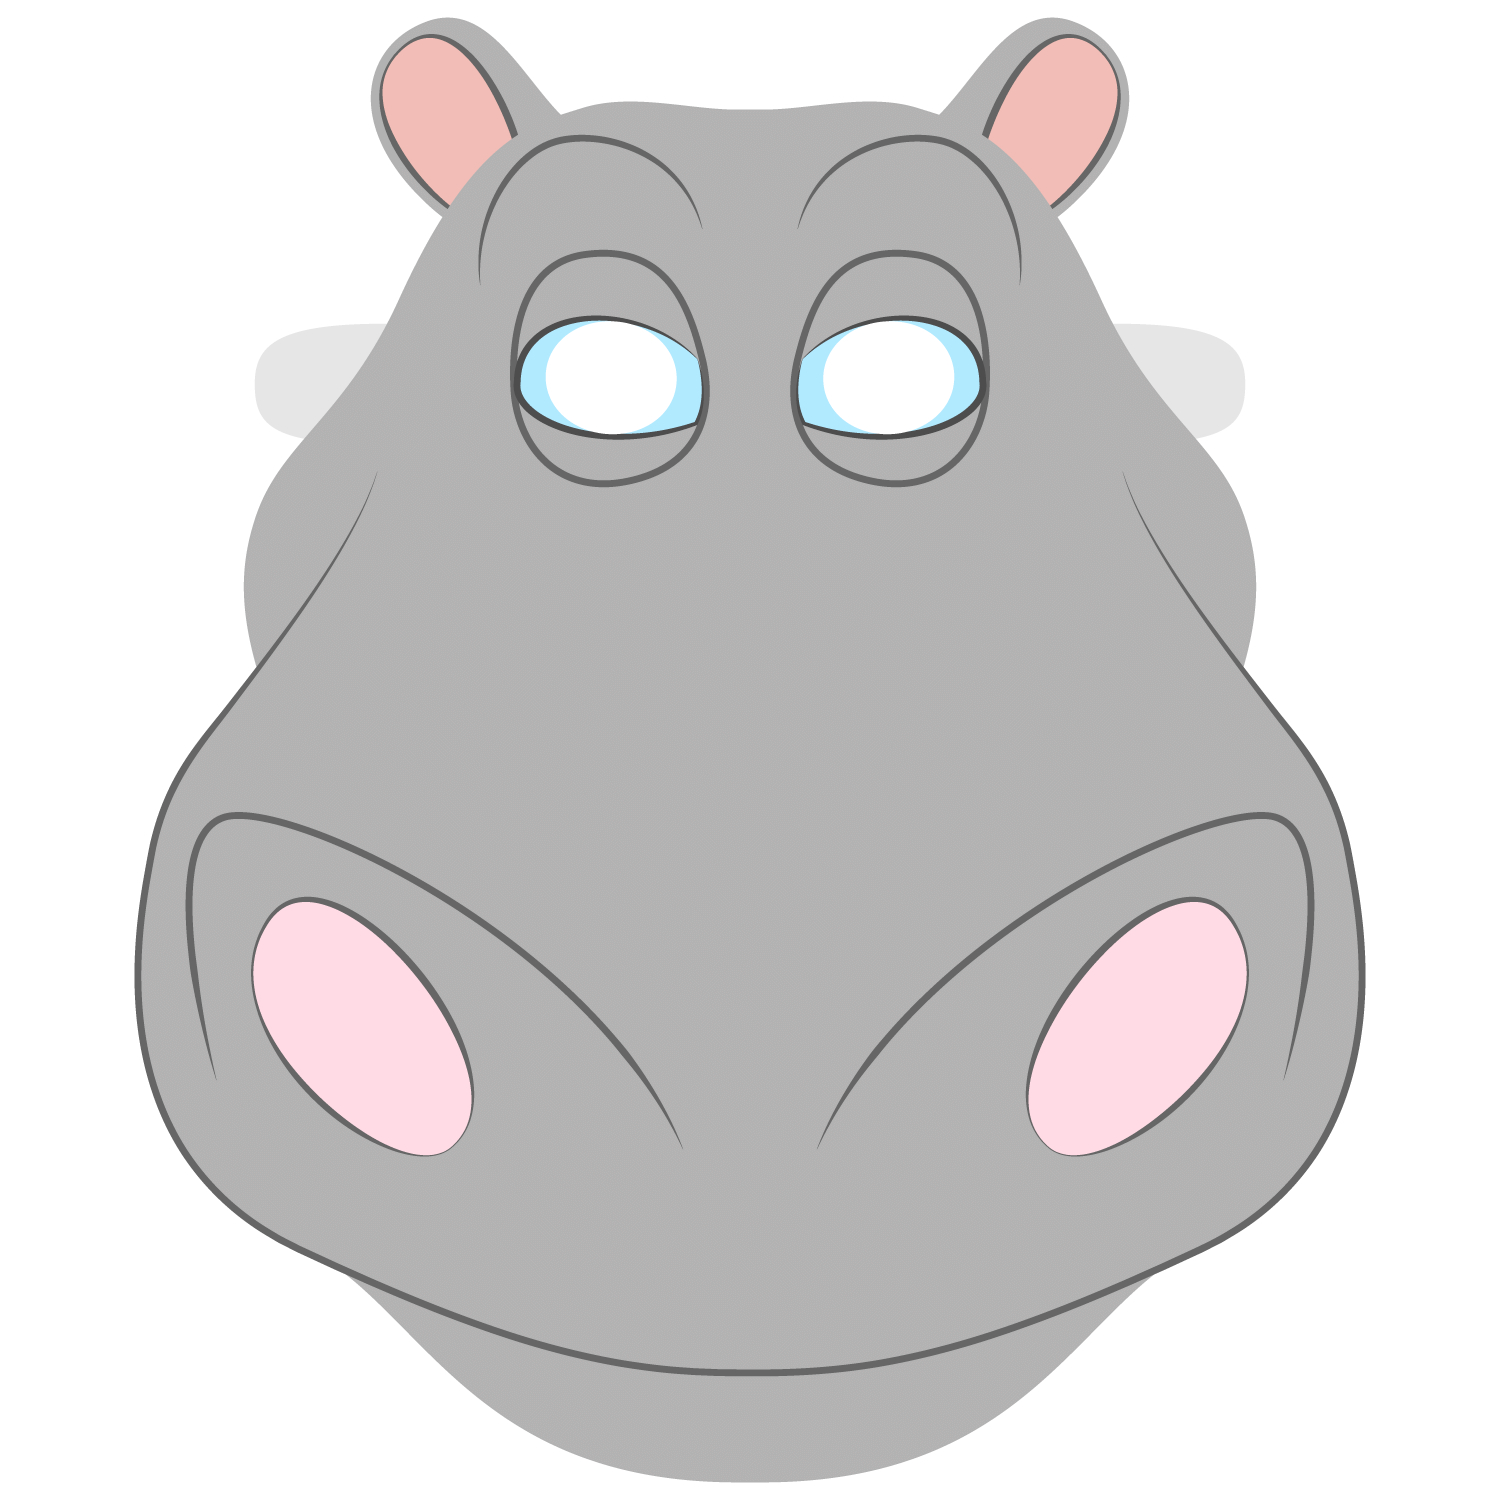 Hippo Mask Template | Free Printable Papercraft Templates - Free Printable Hippo Mask